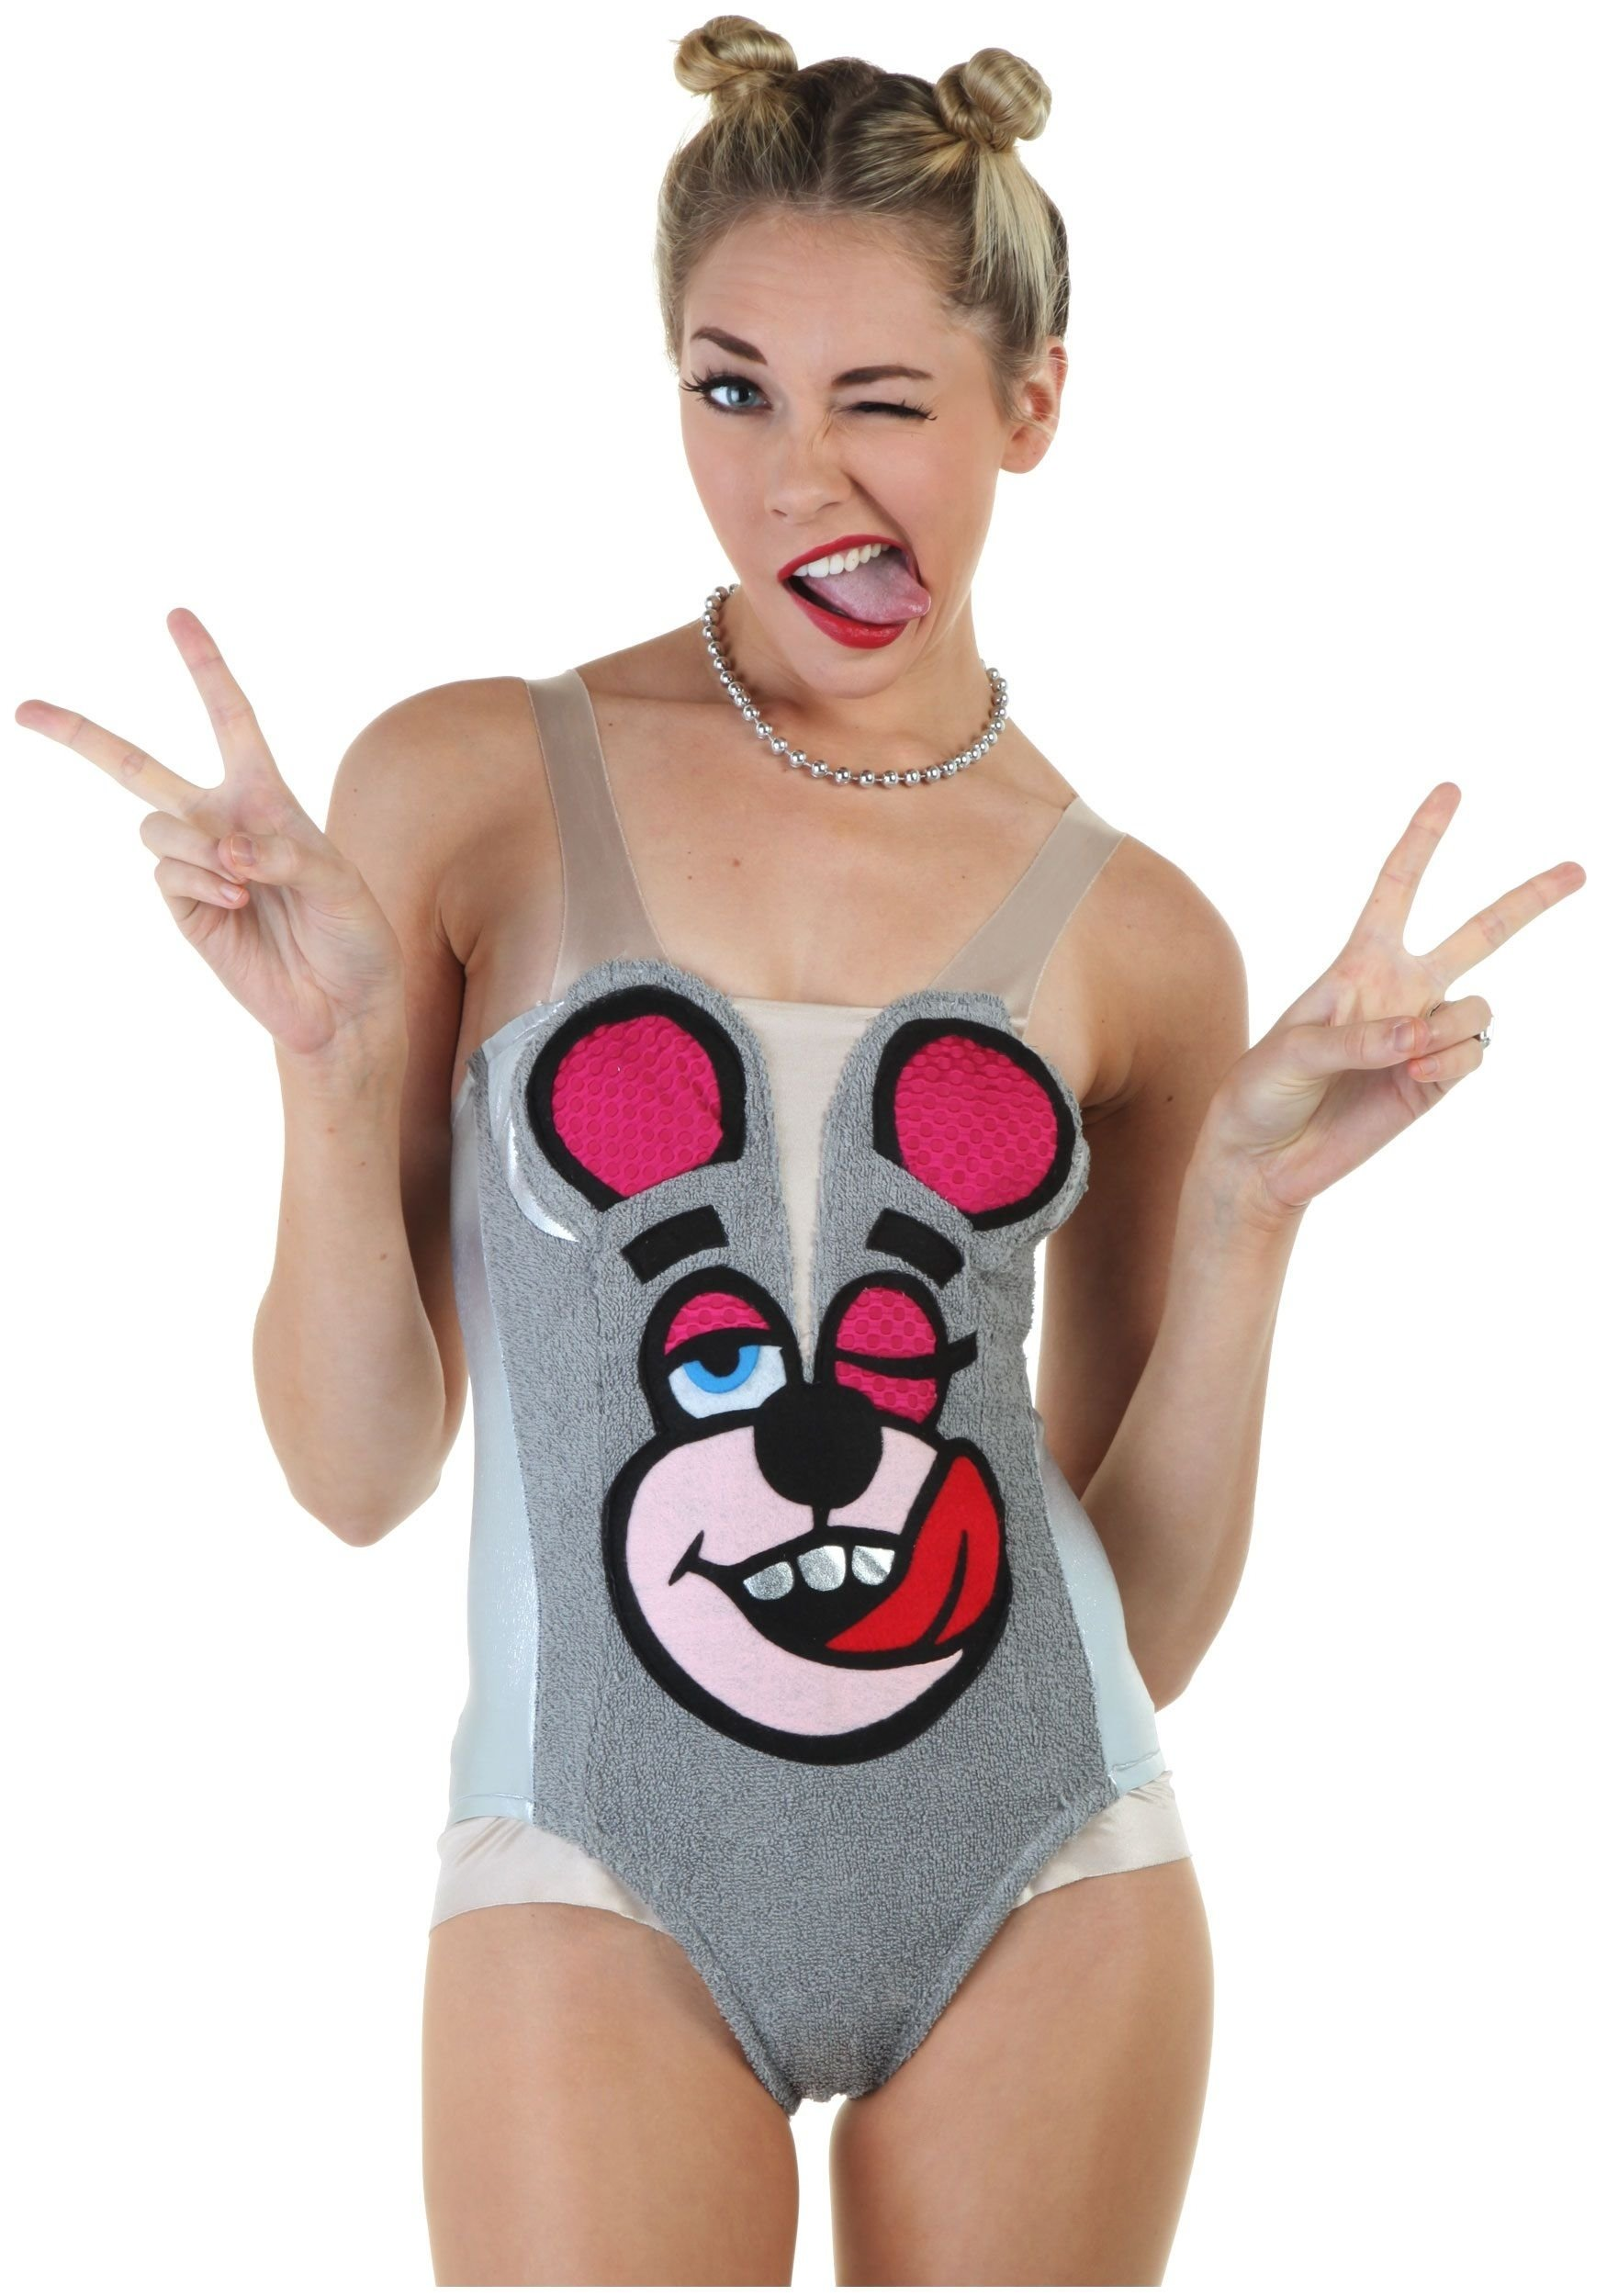 10 Lovable Miley Cyrus Halloween Costume Ideas miley cyrus twerking teddy bear halloween costume so would get 2021